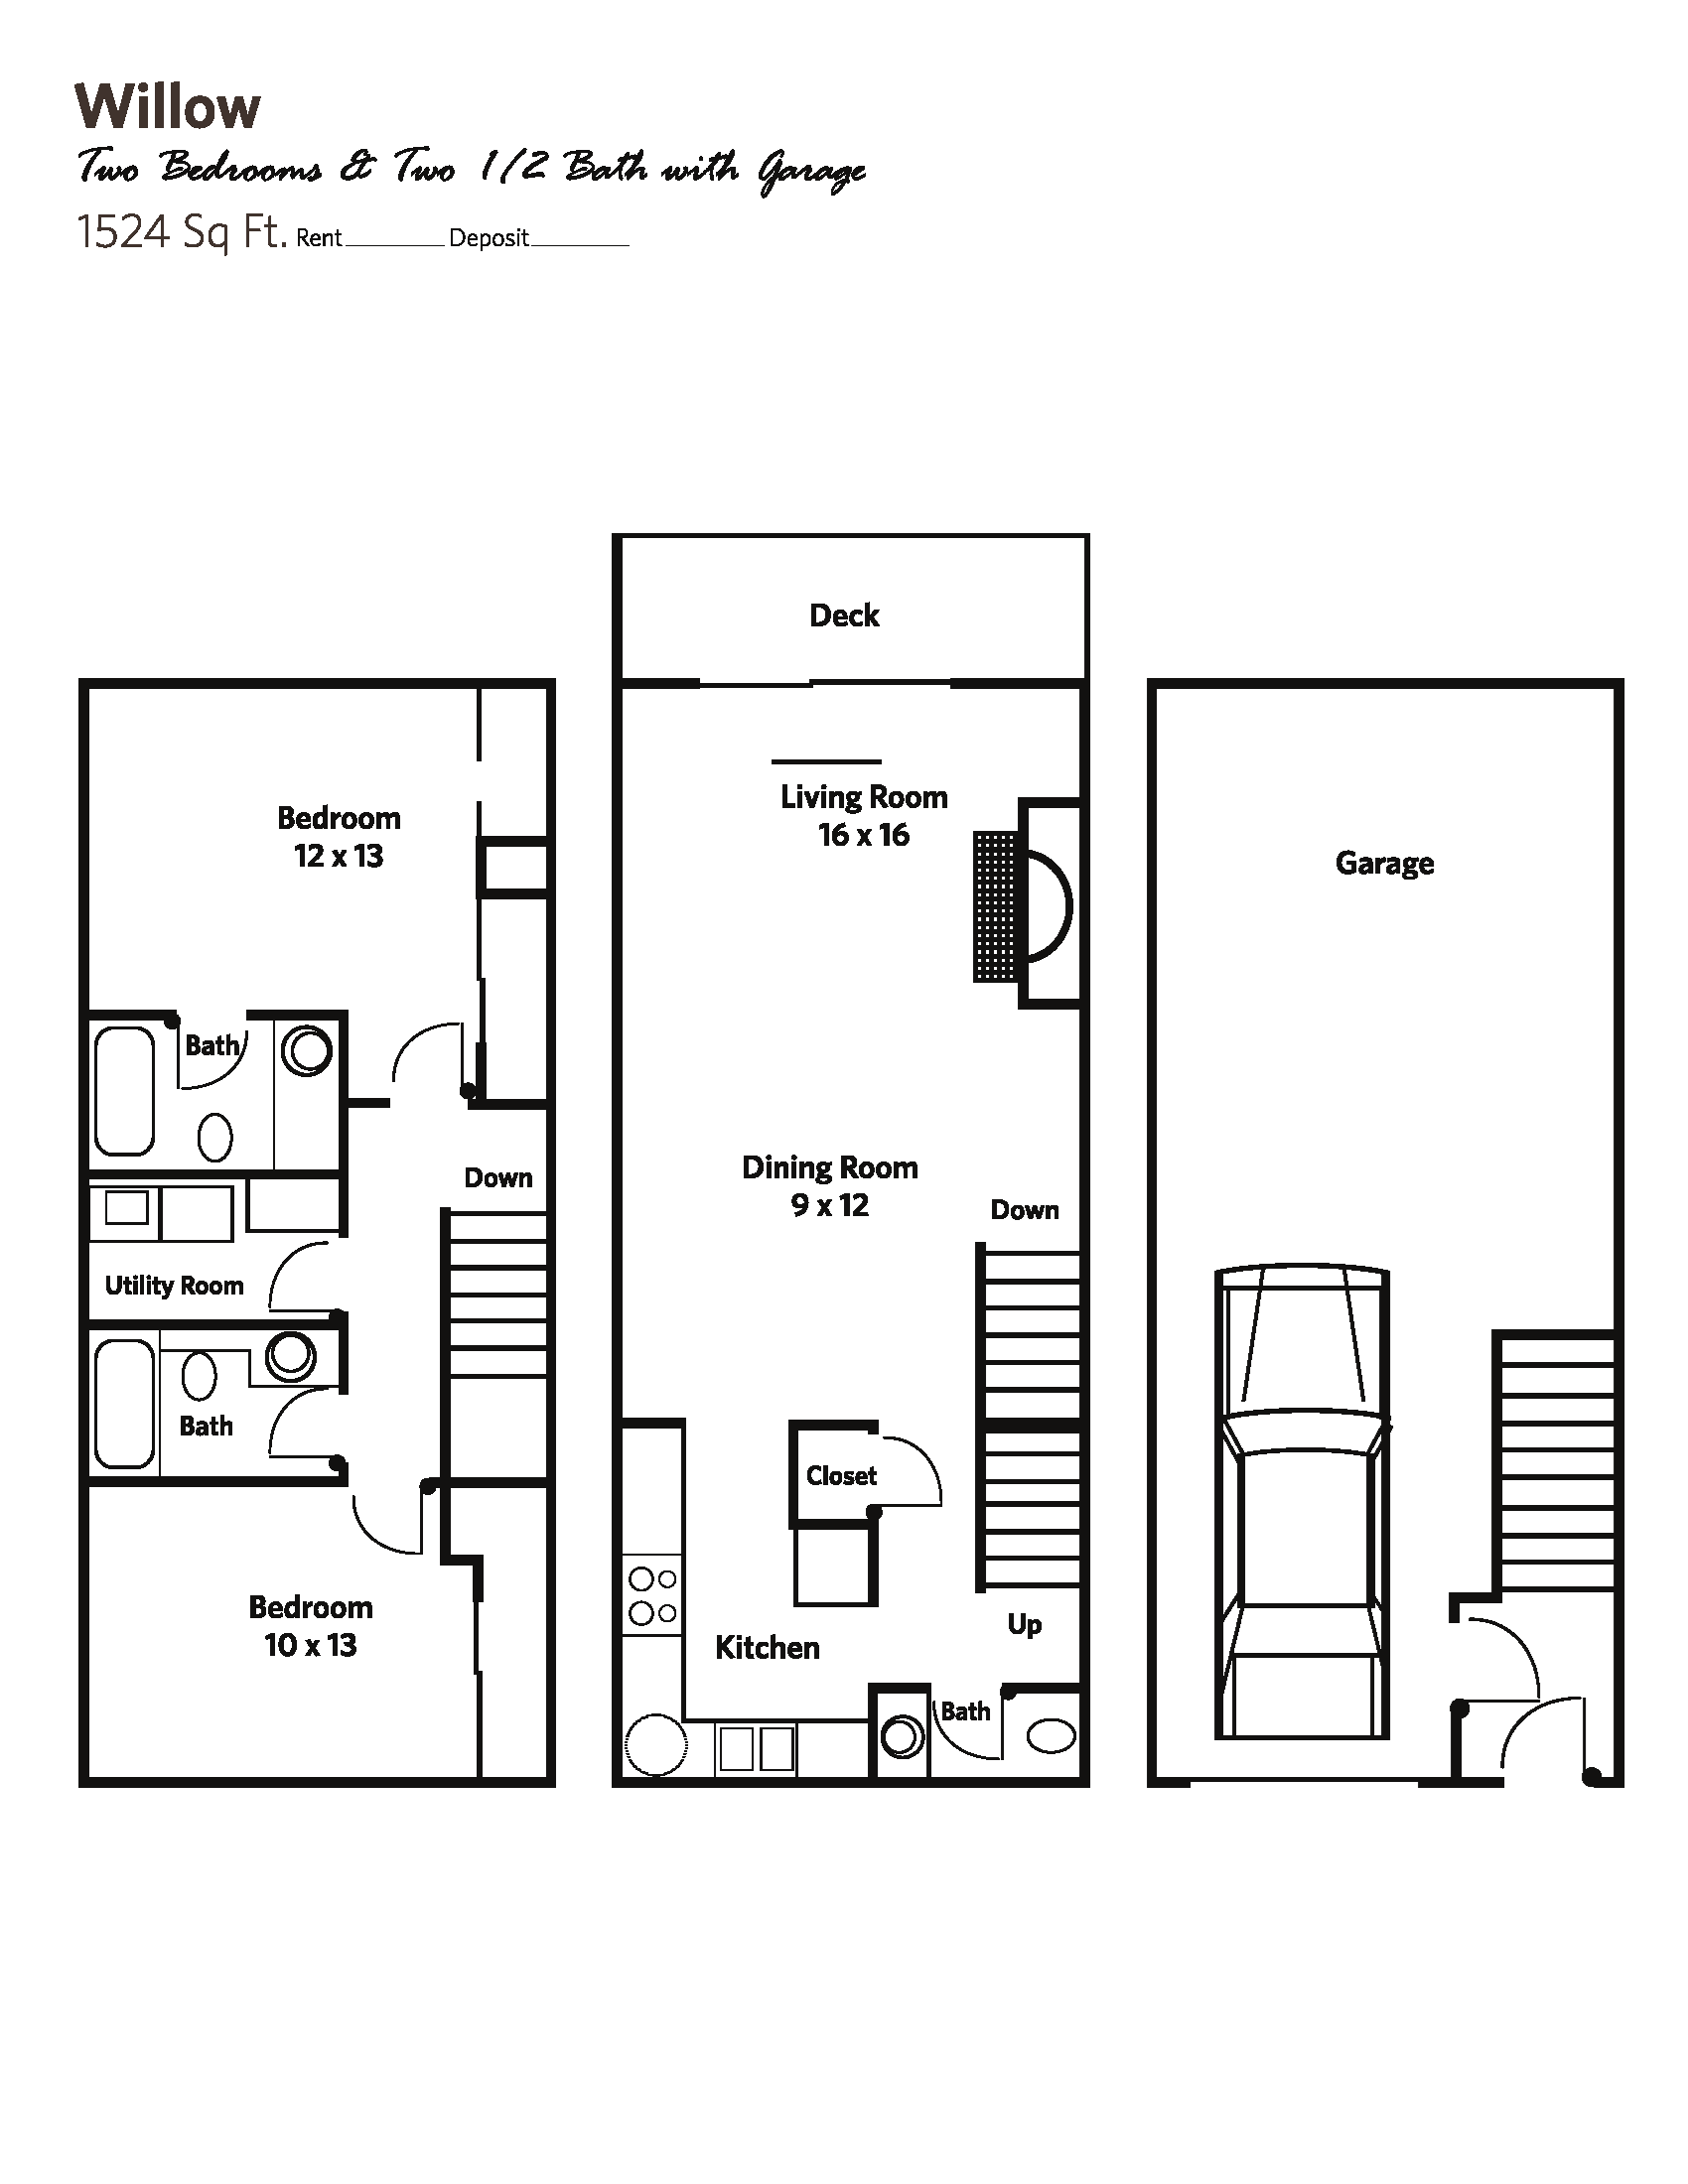 WILLOW (2 bed + 2.5 bath w/garage) - Townhomes Floor Plan 7